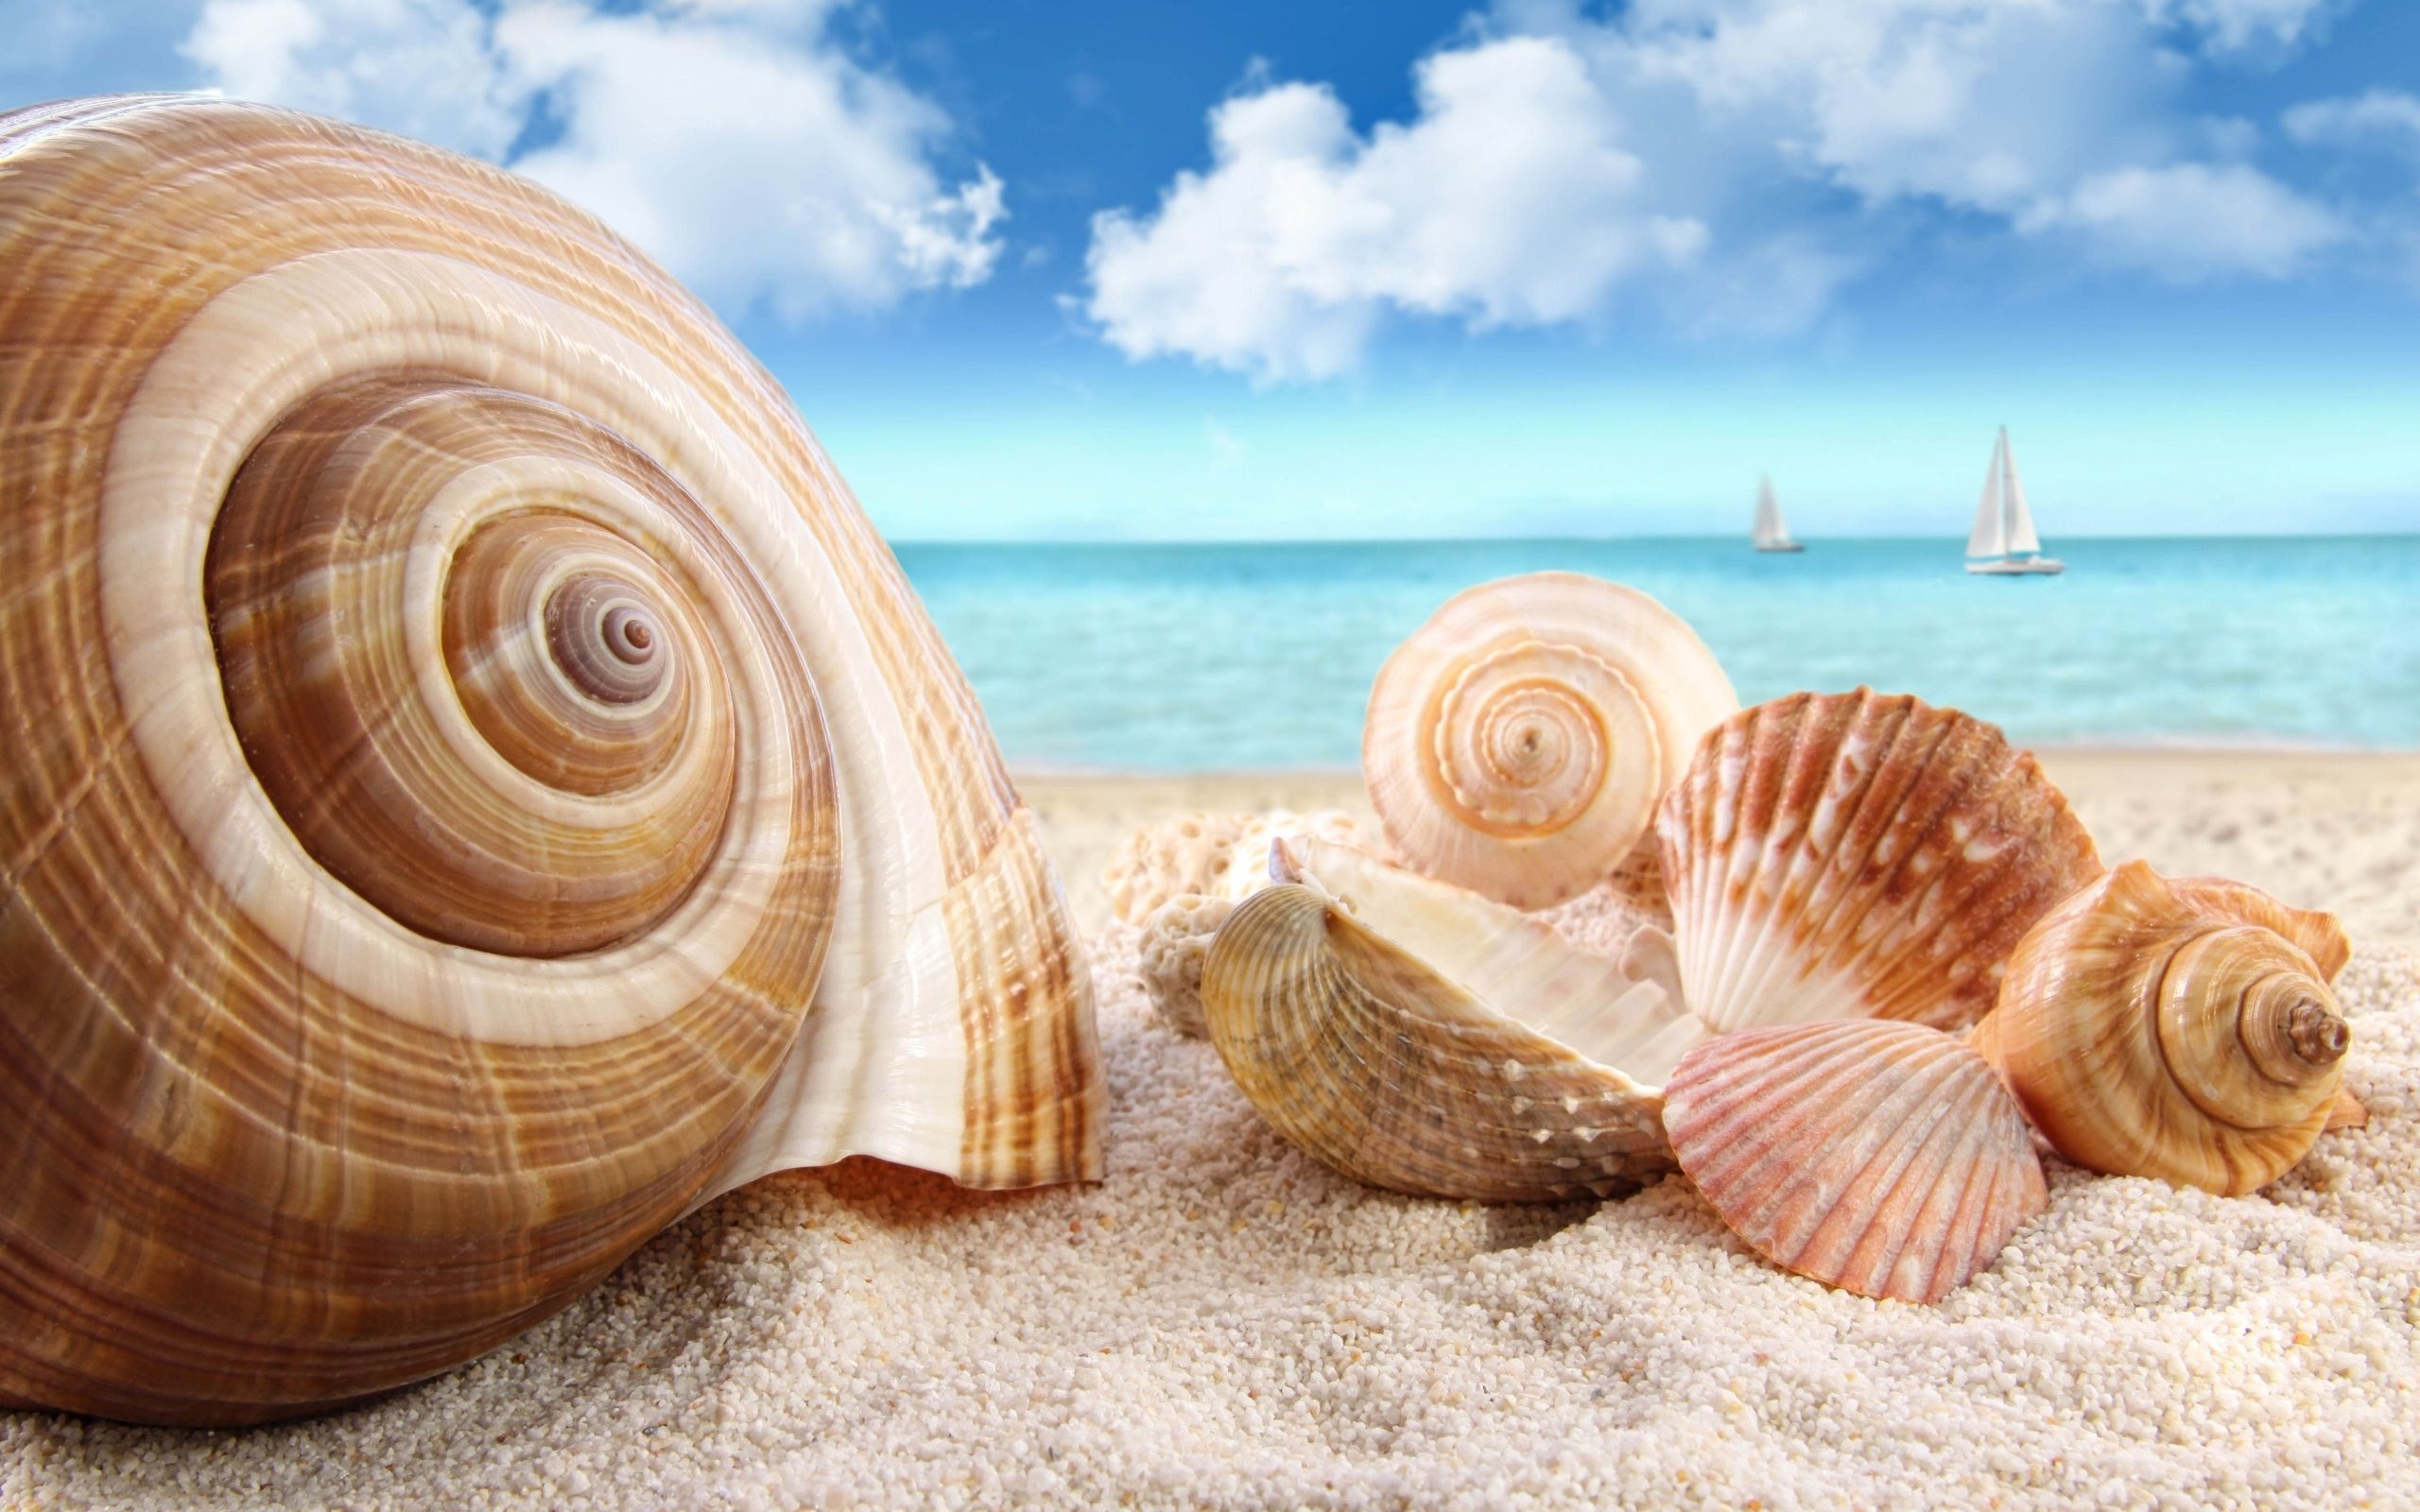 Seashells Beach Hd Wallpaper Download Awesome Nice And